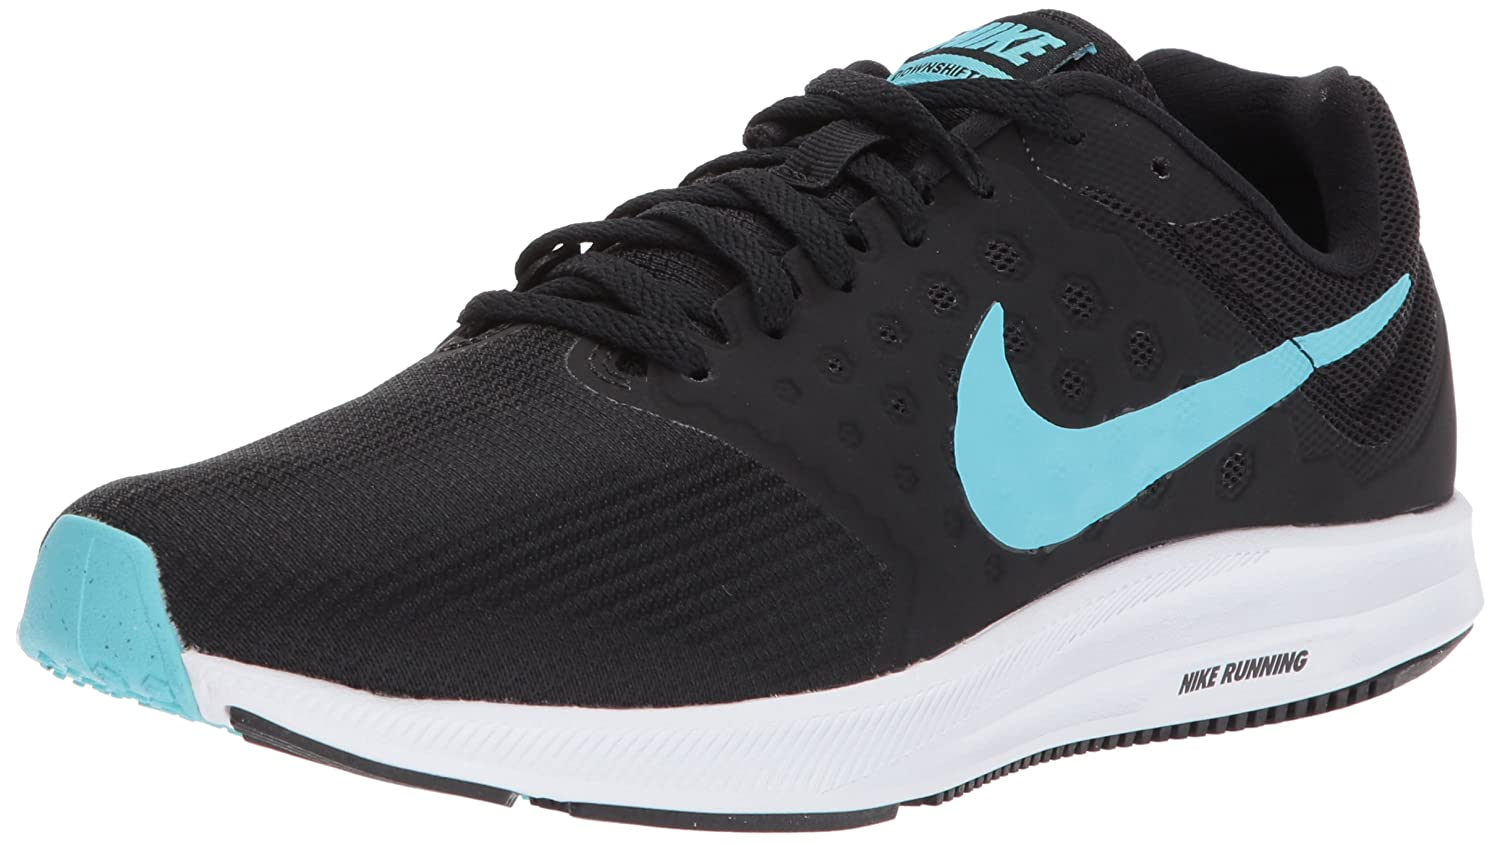 NIKE Women's Downshifter US|Black/Polarized 7 B06WLMX789 10 B(M) US|Black/Polarized Downshifter Blue-white b99f95